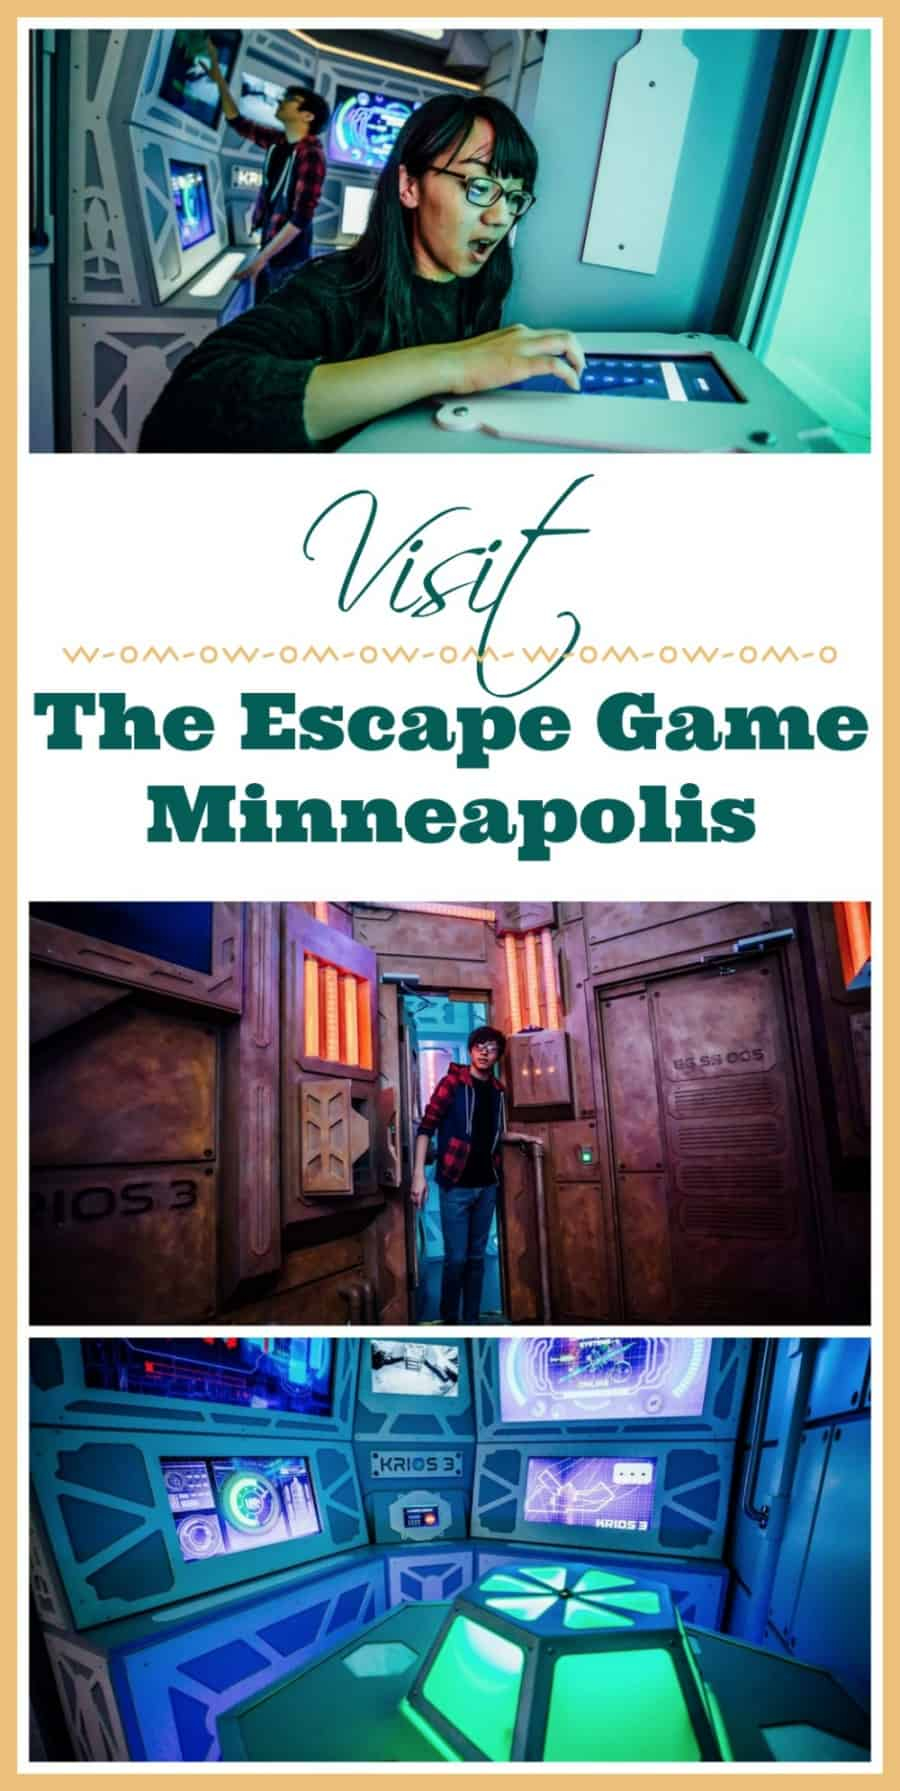 The Escape Game Minneapolis Review